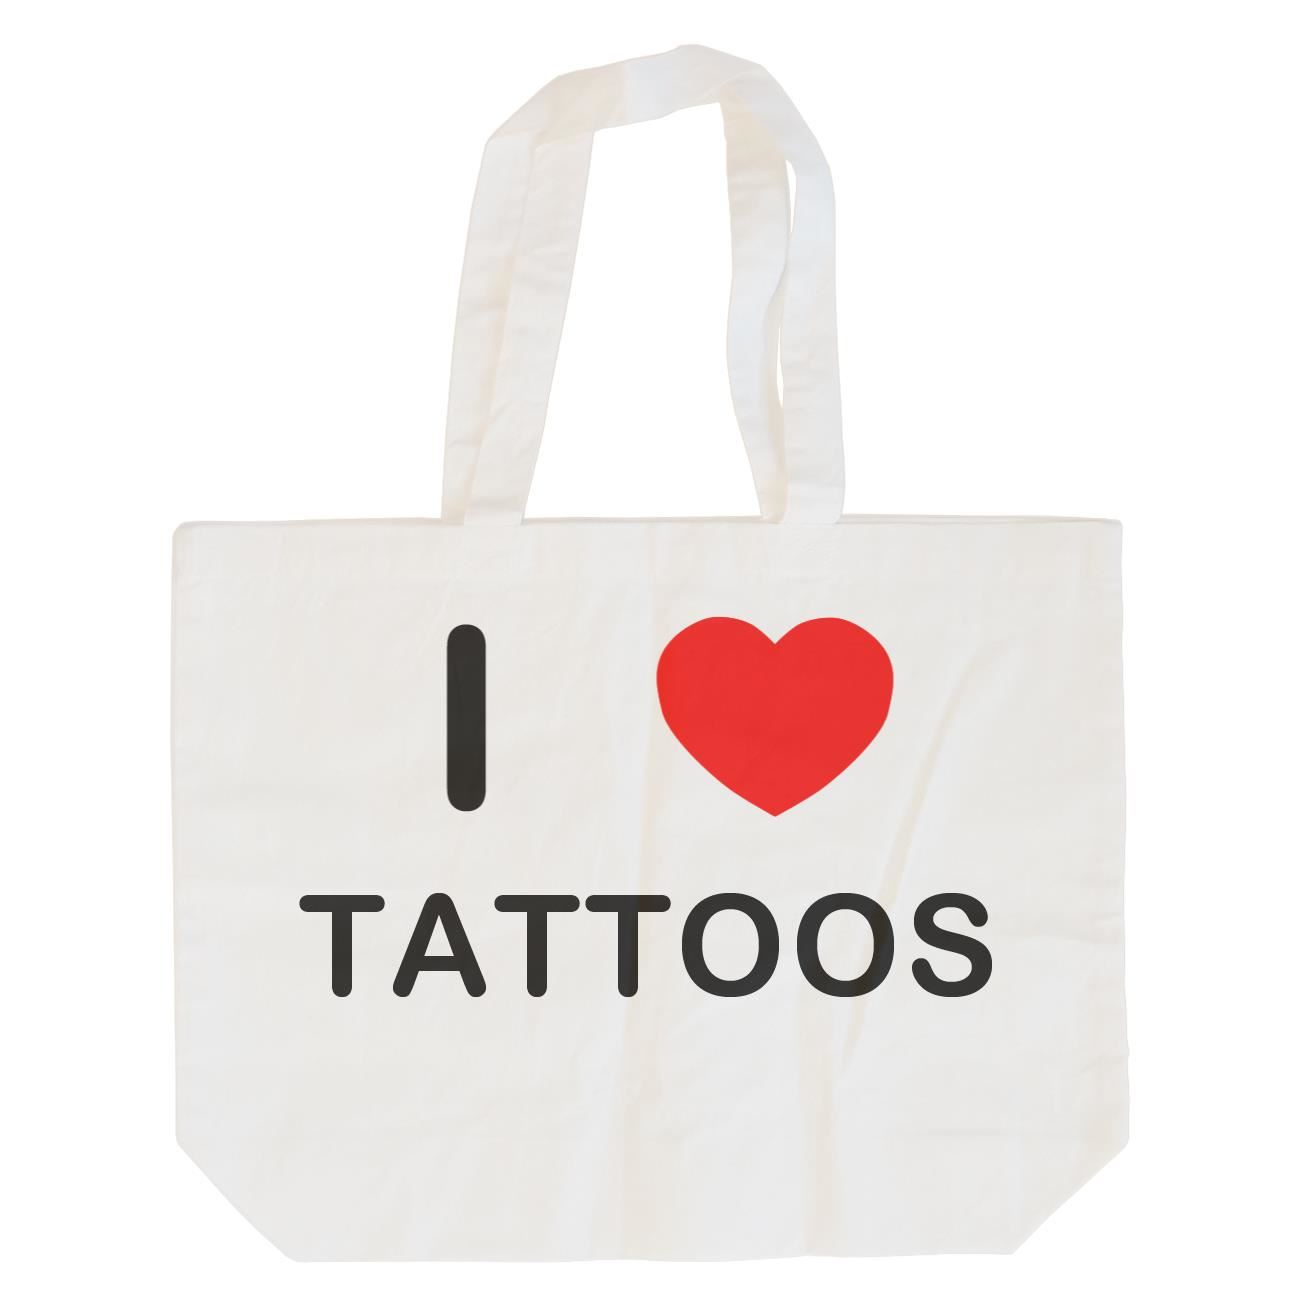 I Love Tattoos - Cotton Bag | Size choice Tote, Shopper or Sling